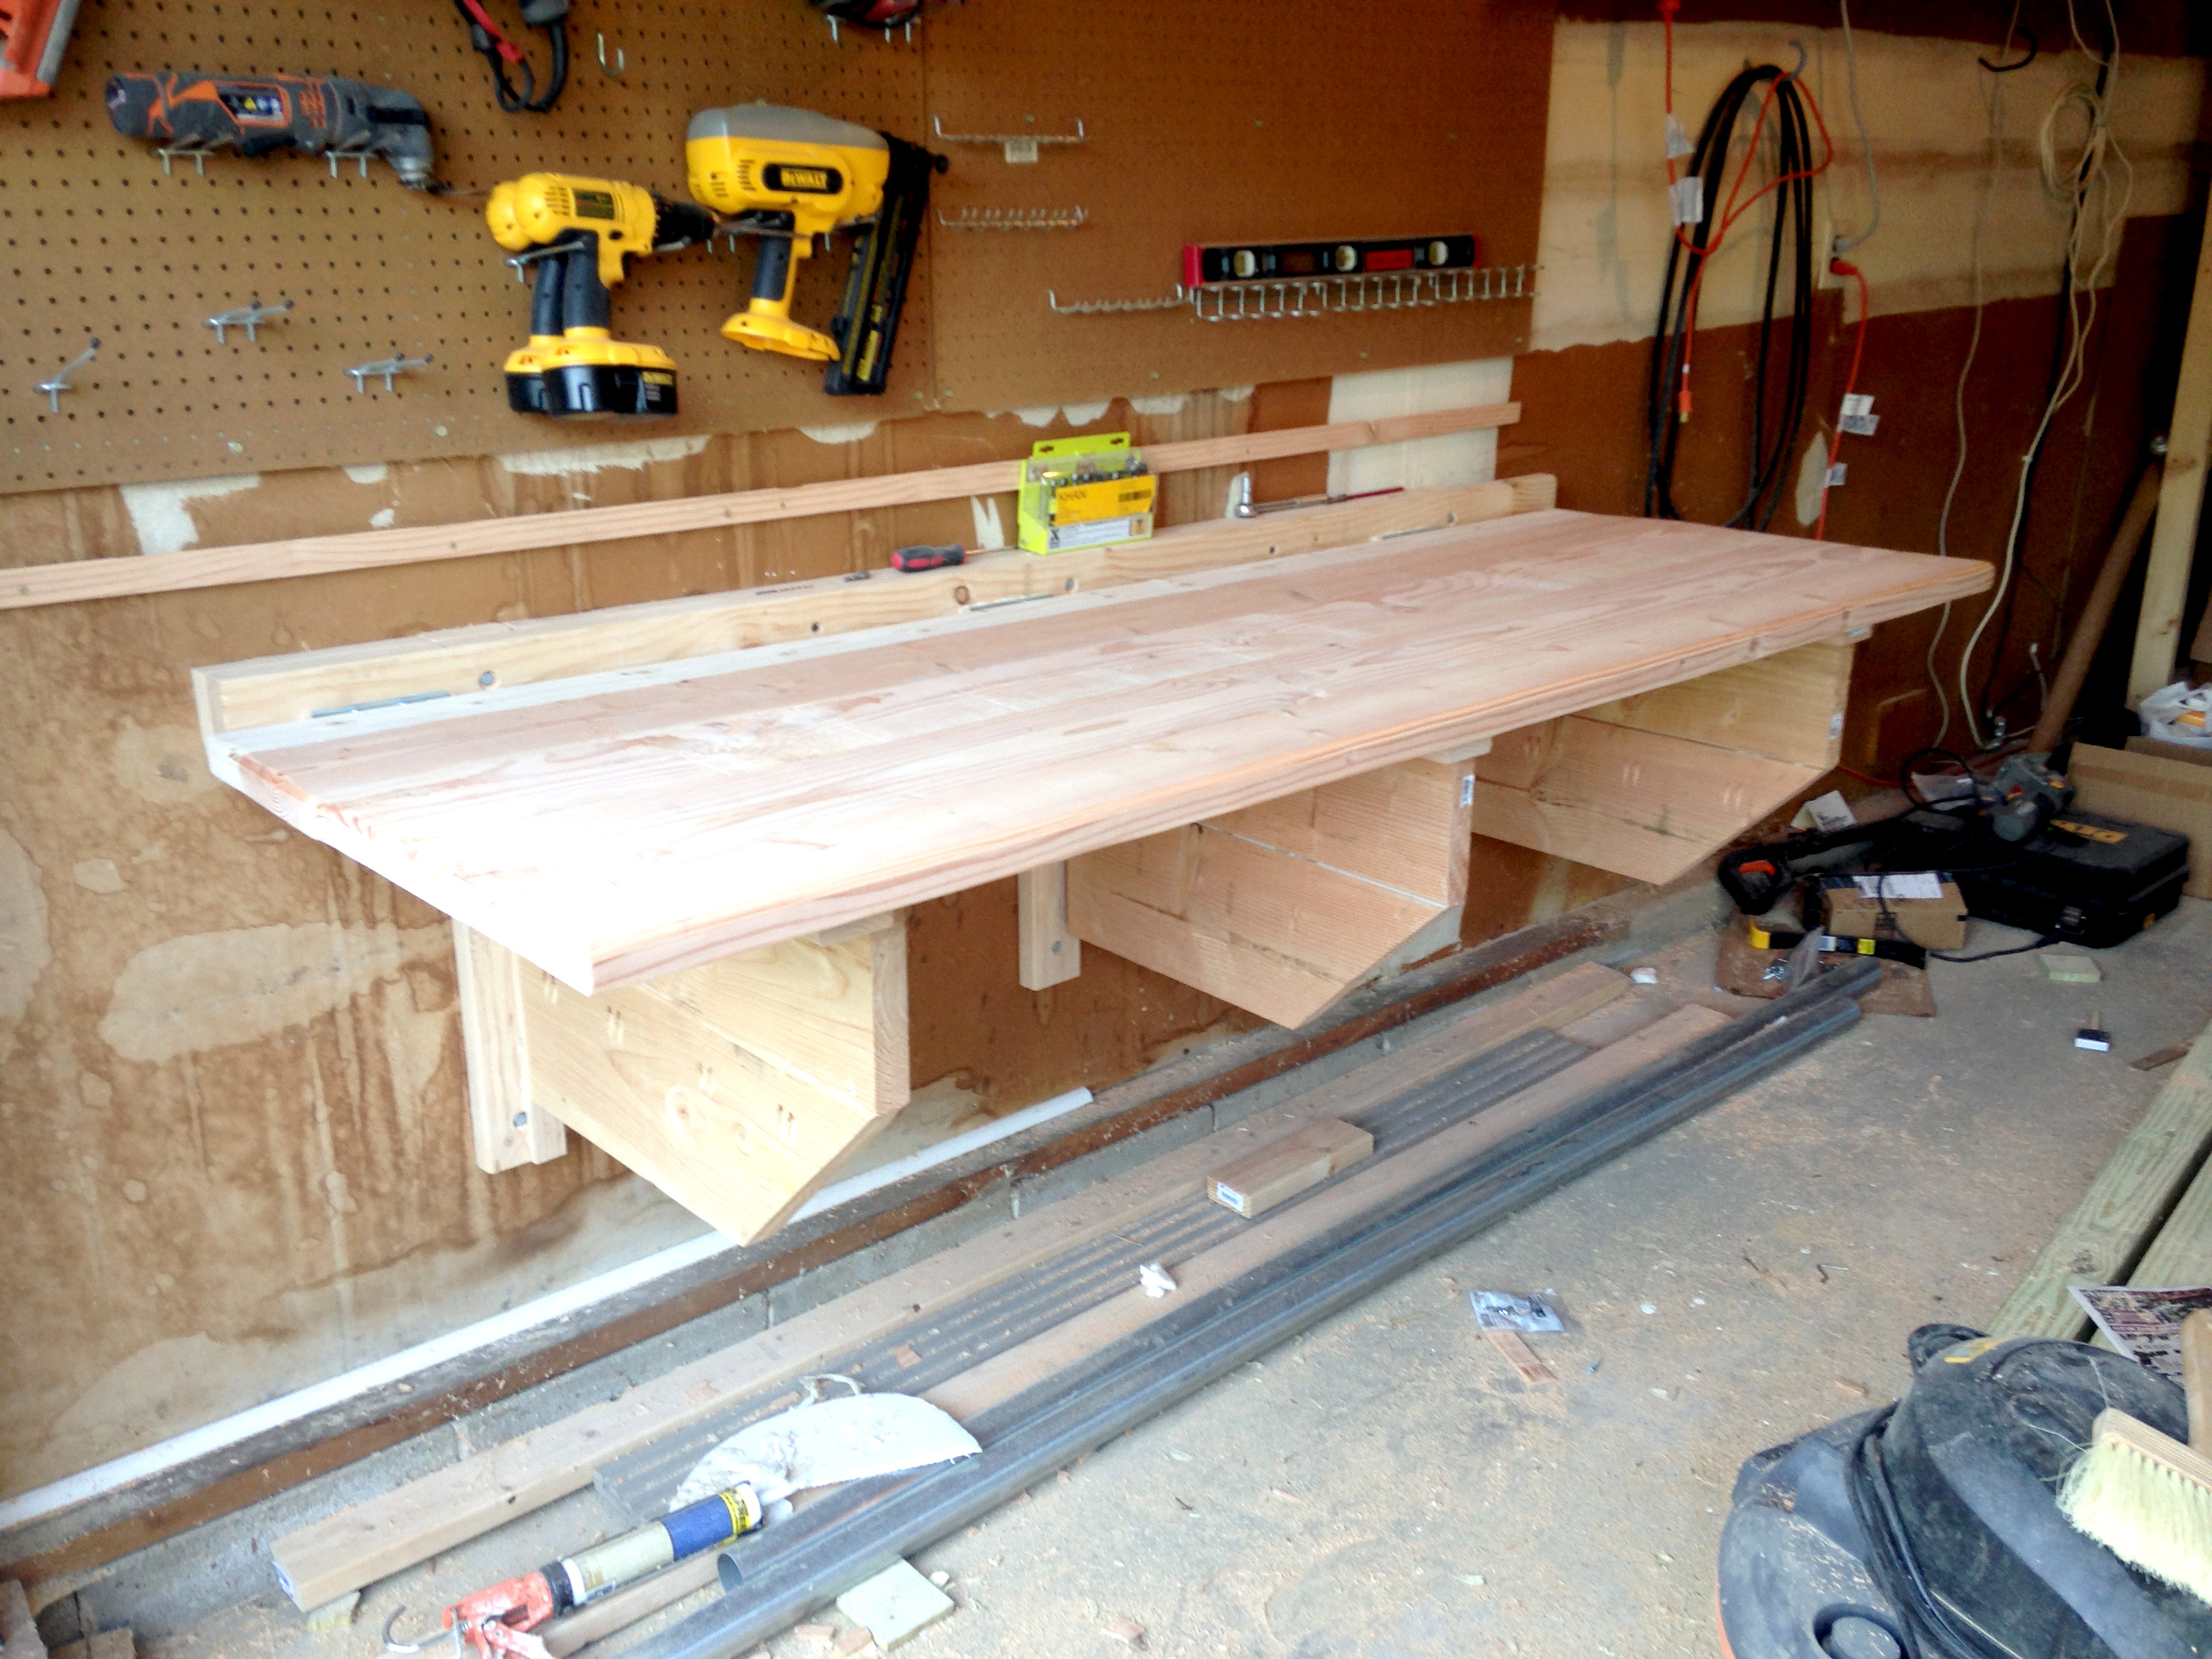 Folding Workbench Wall Mounted | Folding Legs for Workbench | Wall Mounted Folding Workbench